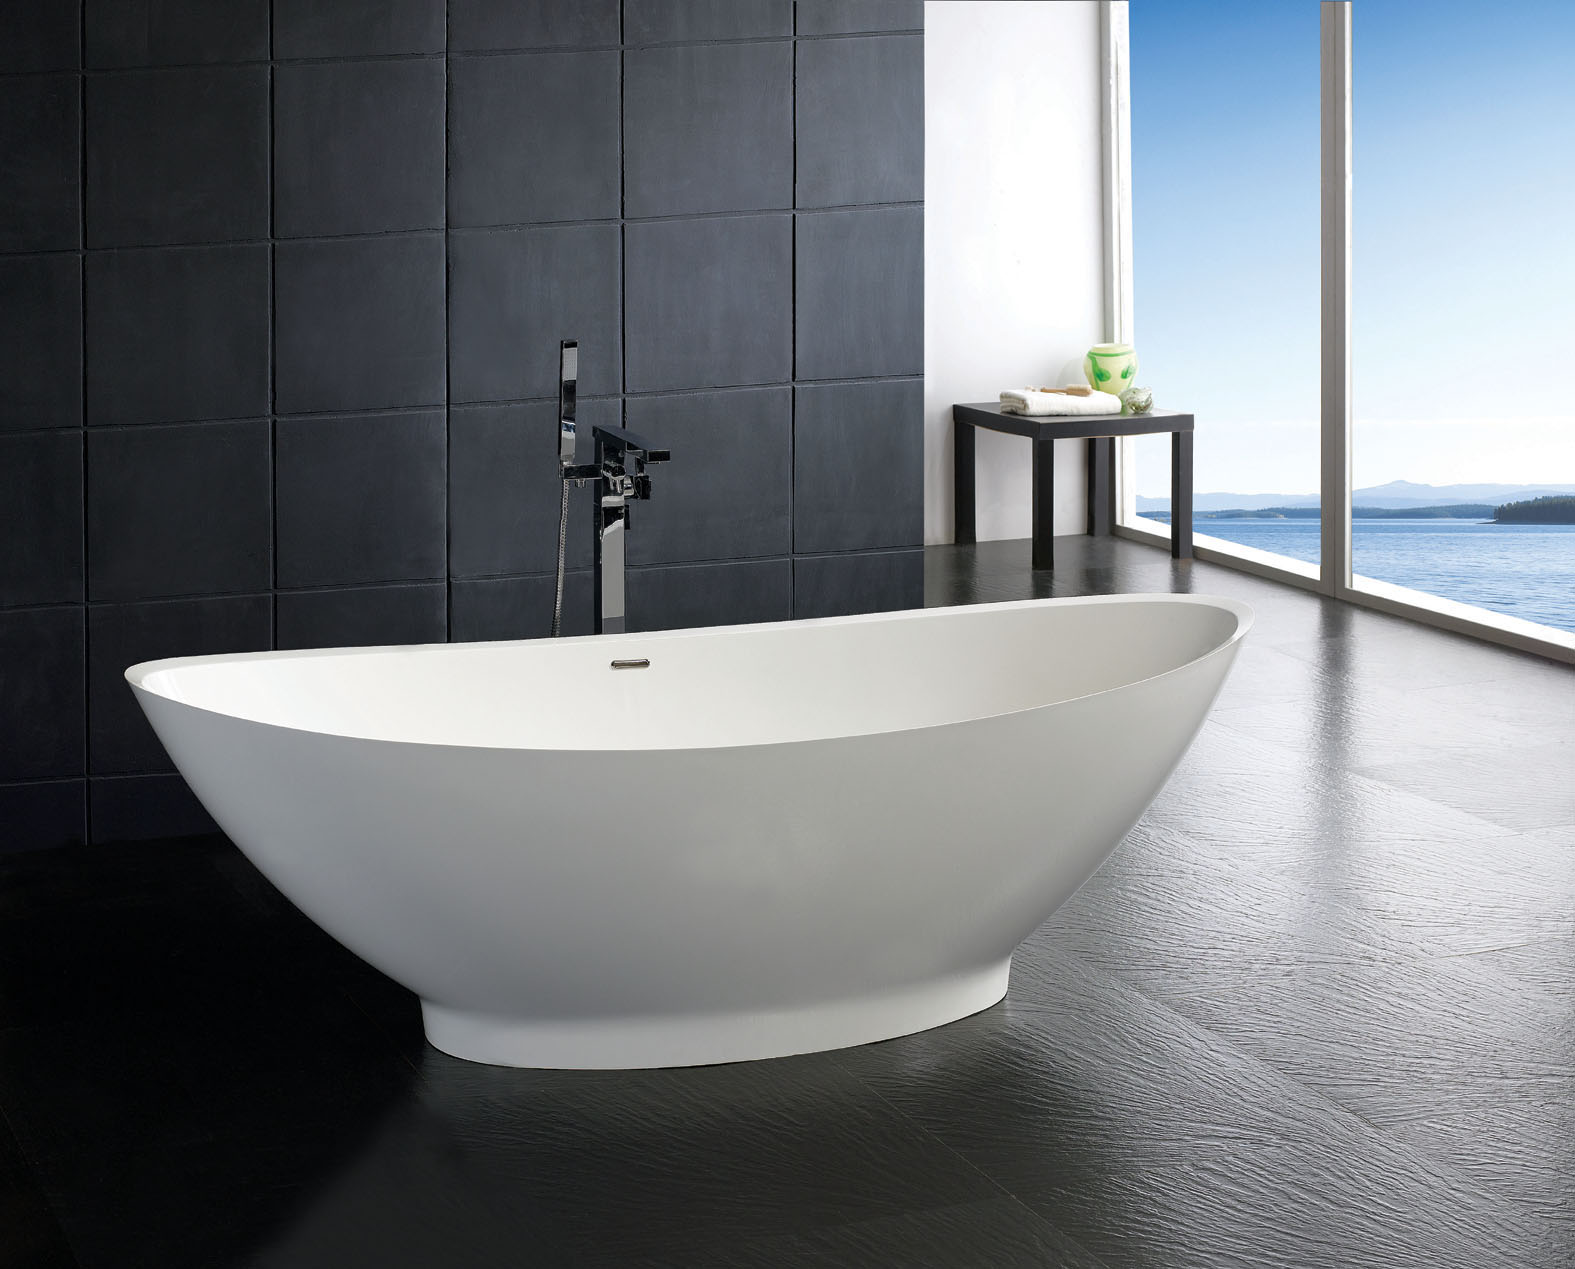 Esperia luxury modern bathtub 74 for Soaking tub vs bathtub